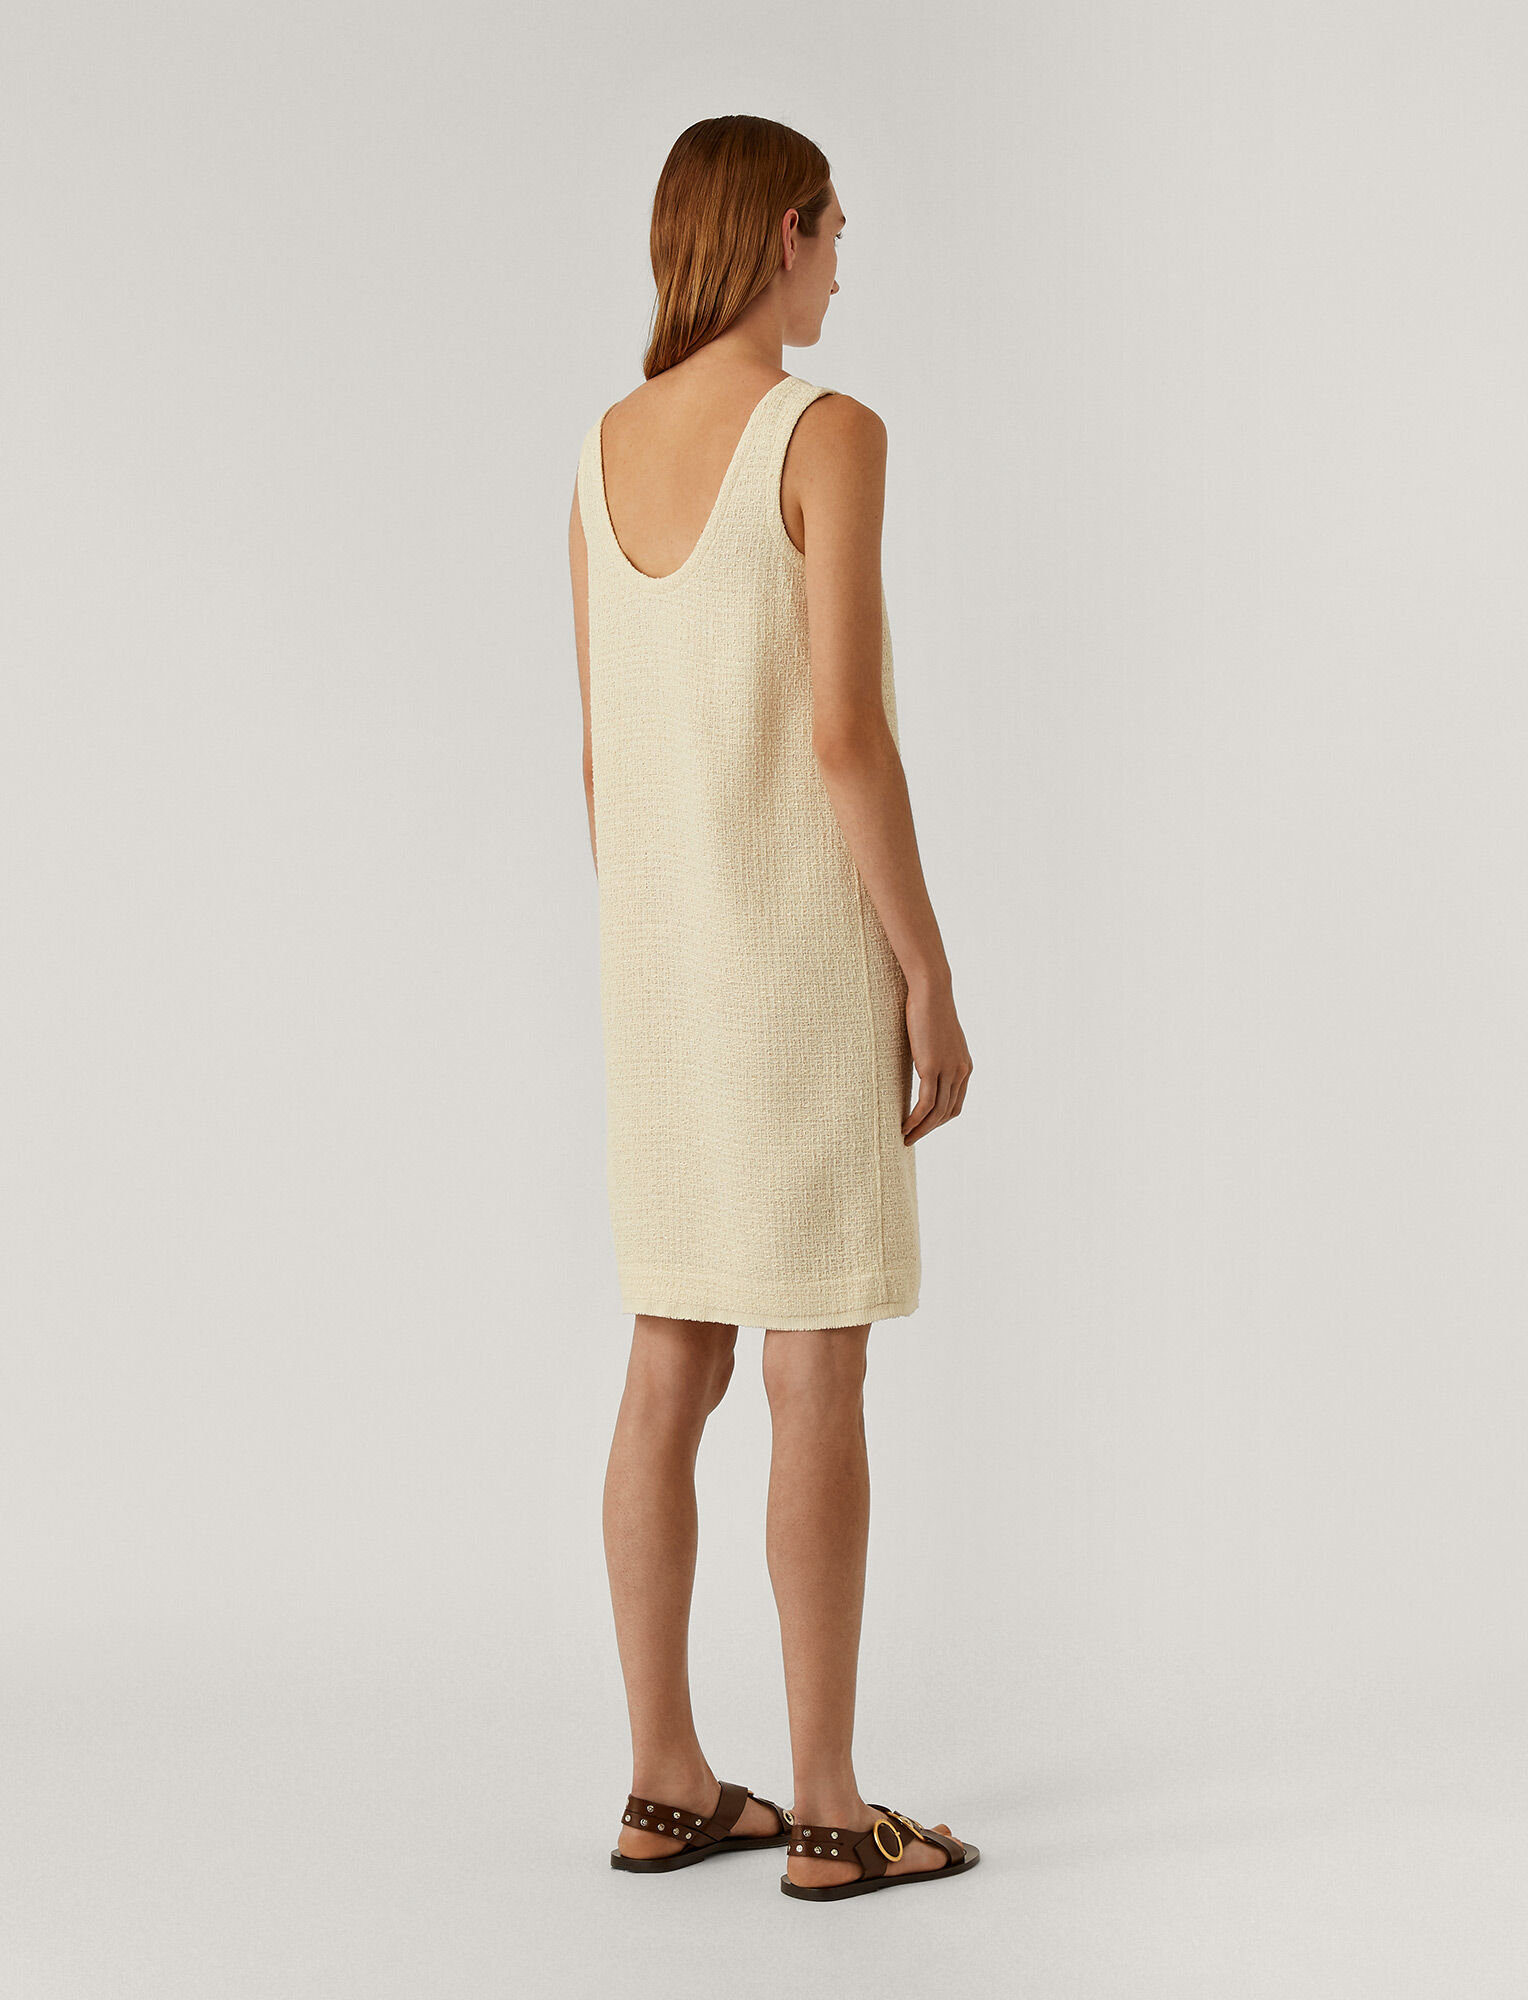 Joseph, Dria Tweed Dress, in CREAM